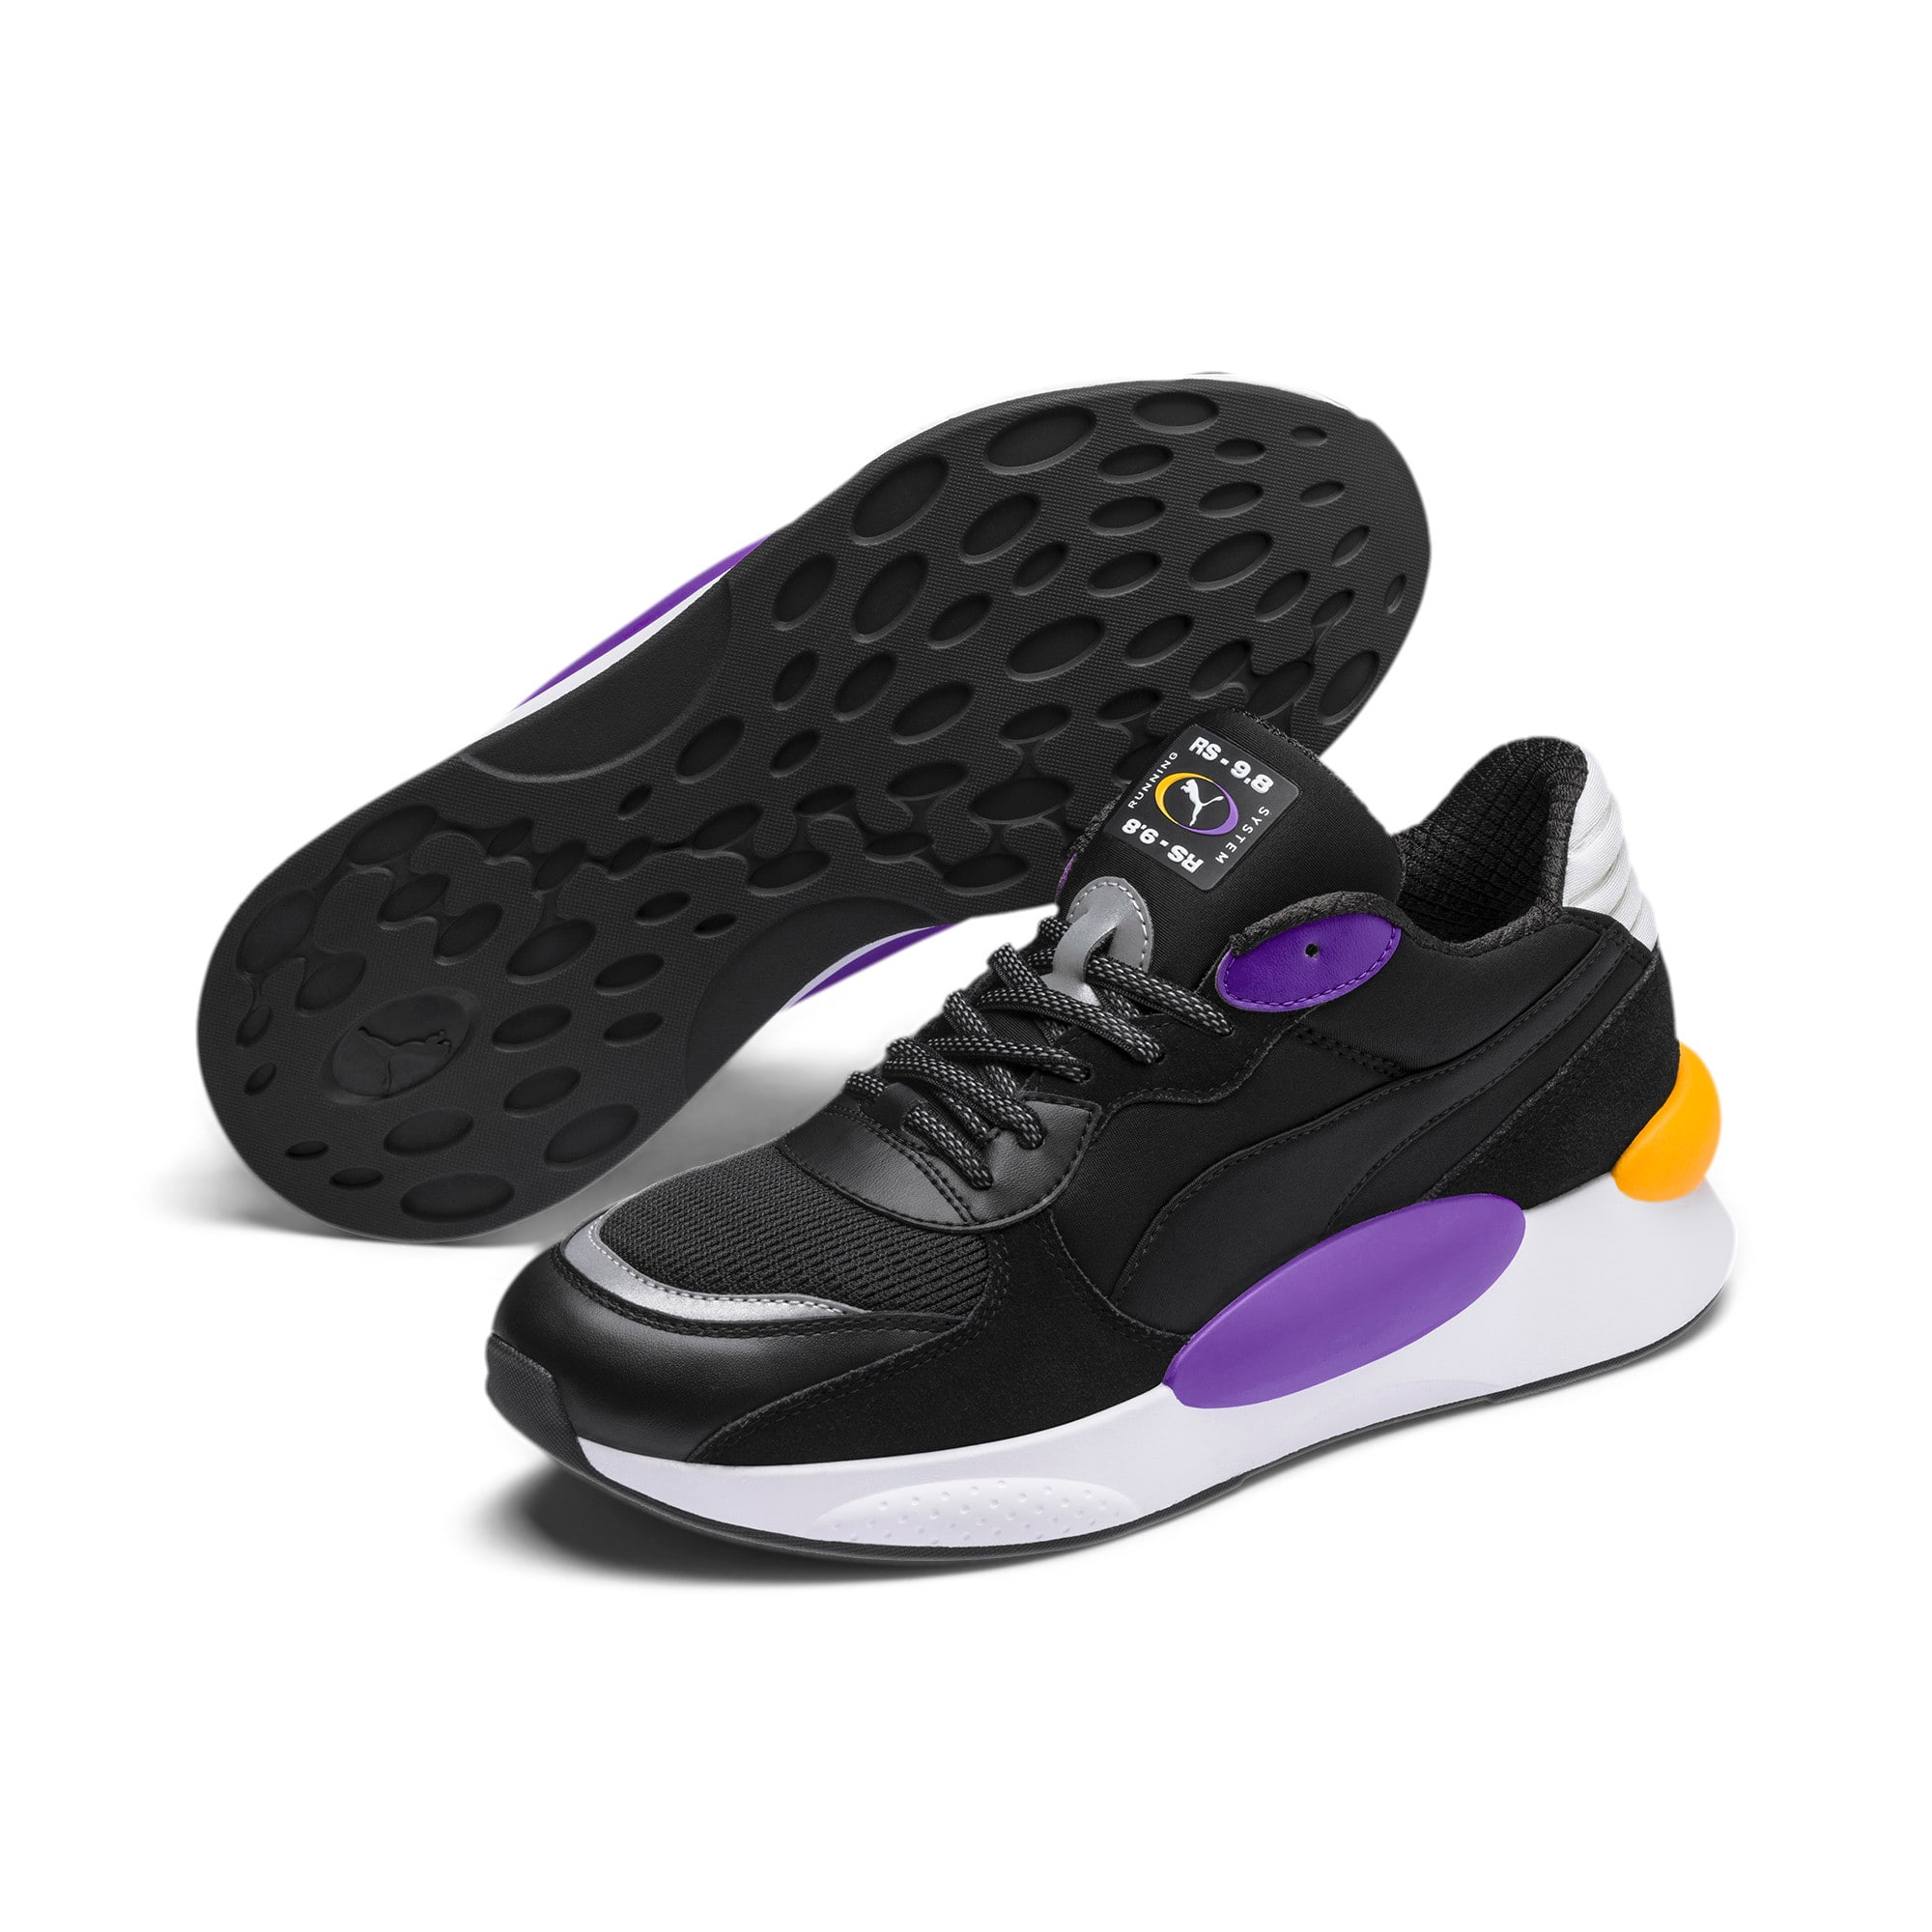 Imagen en miniatura 3 de Zapatillas RS 9.8 Gravity, Puma Black-Purple Glimmer, mediana